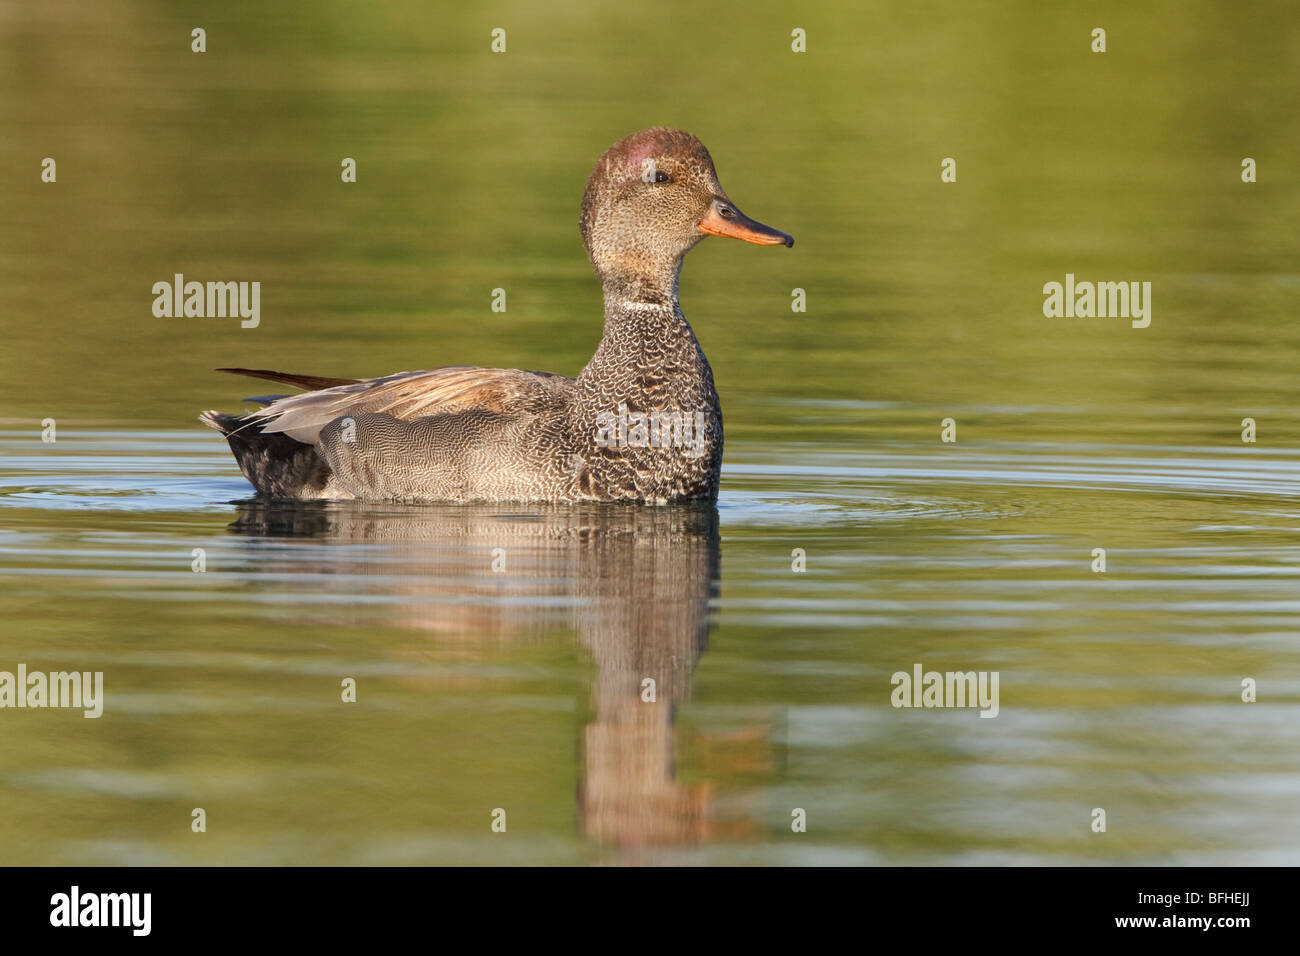 Gadwall (Anas strepera) swimming on a pond in Toronto, Ontario, Canada. - Stock Image